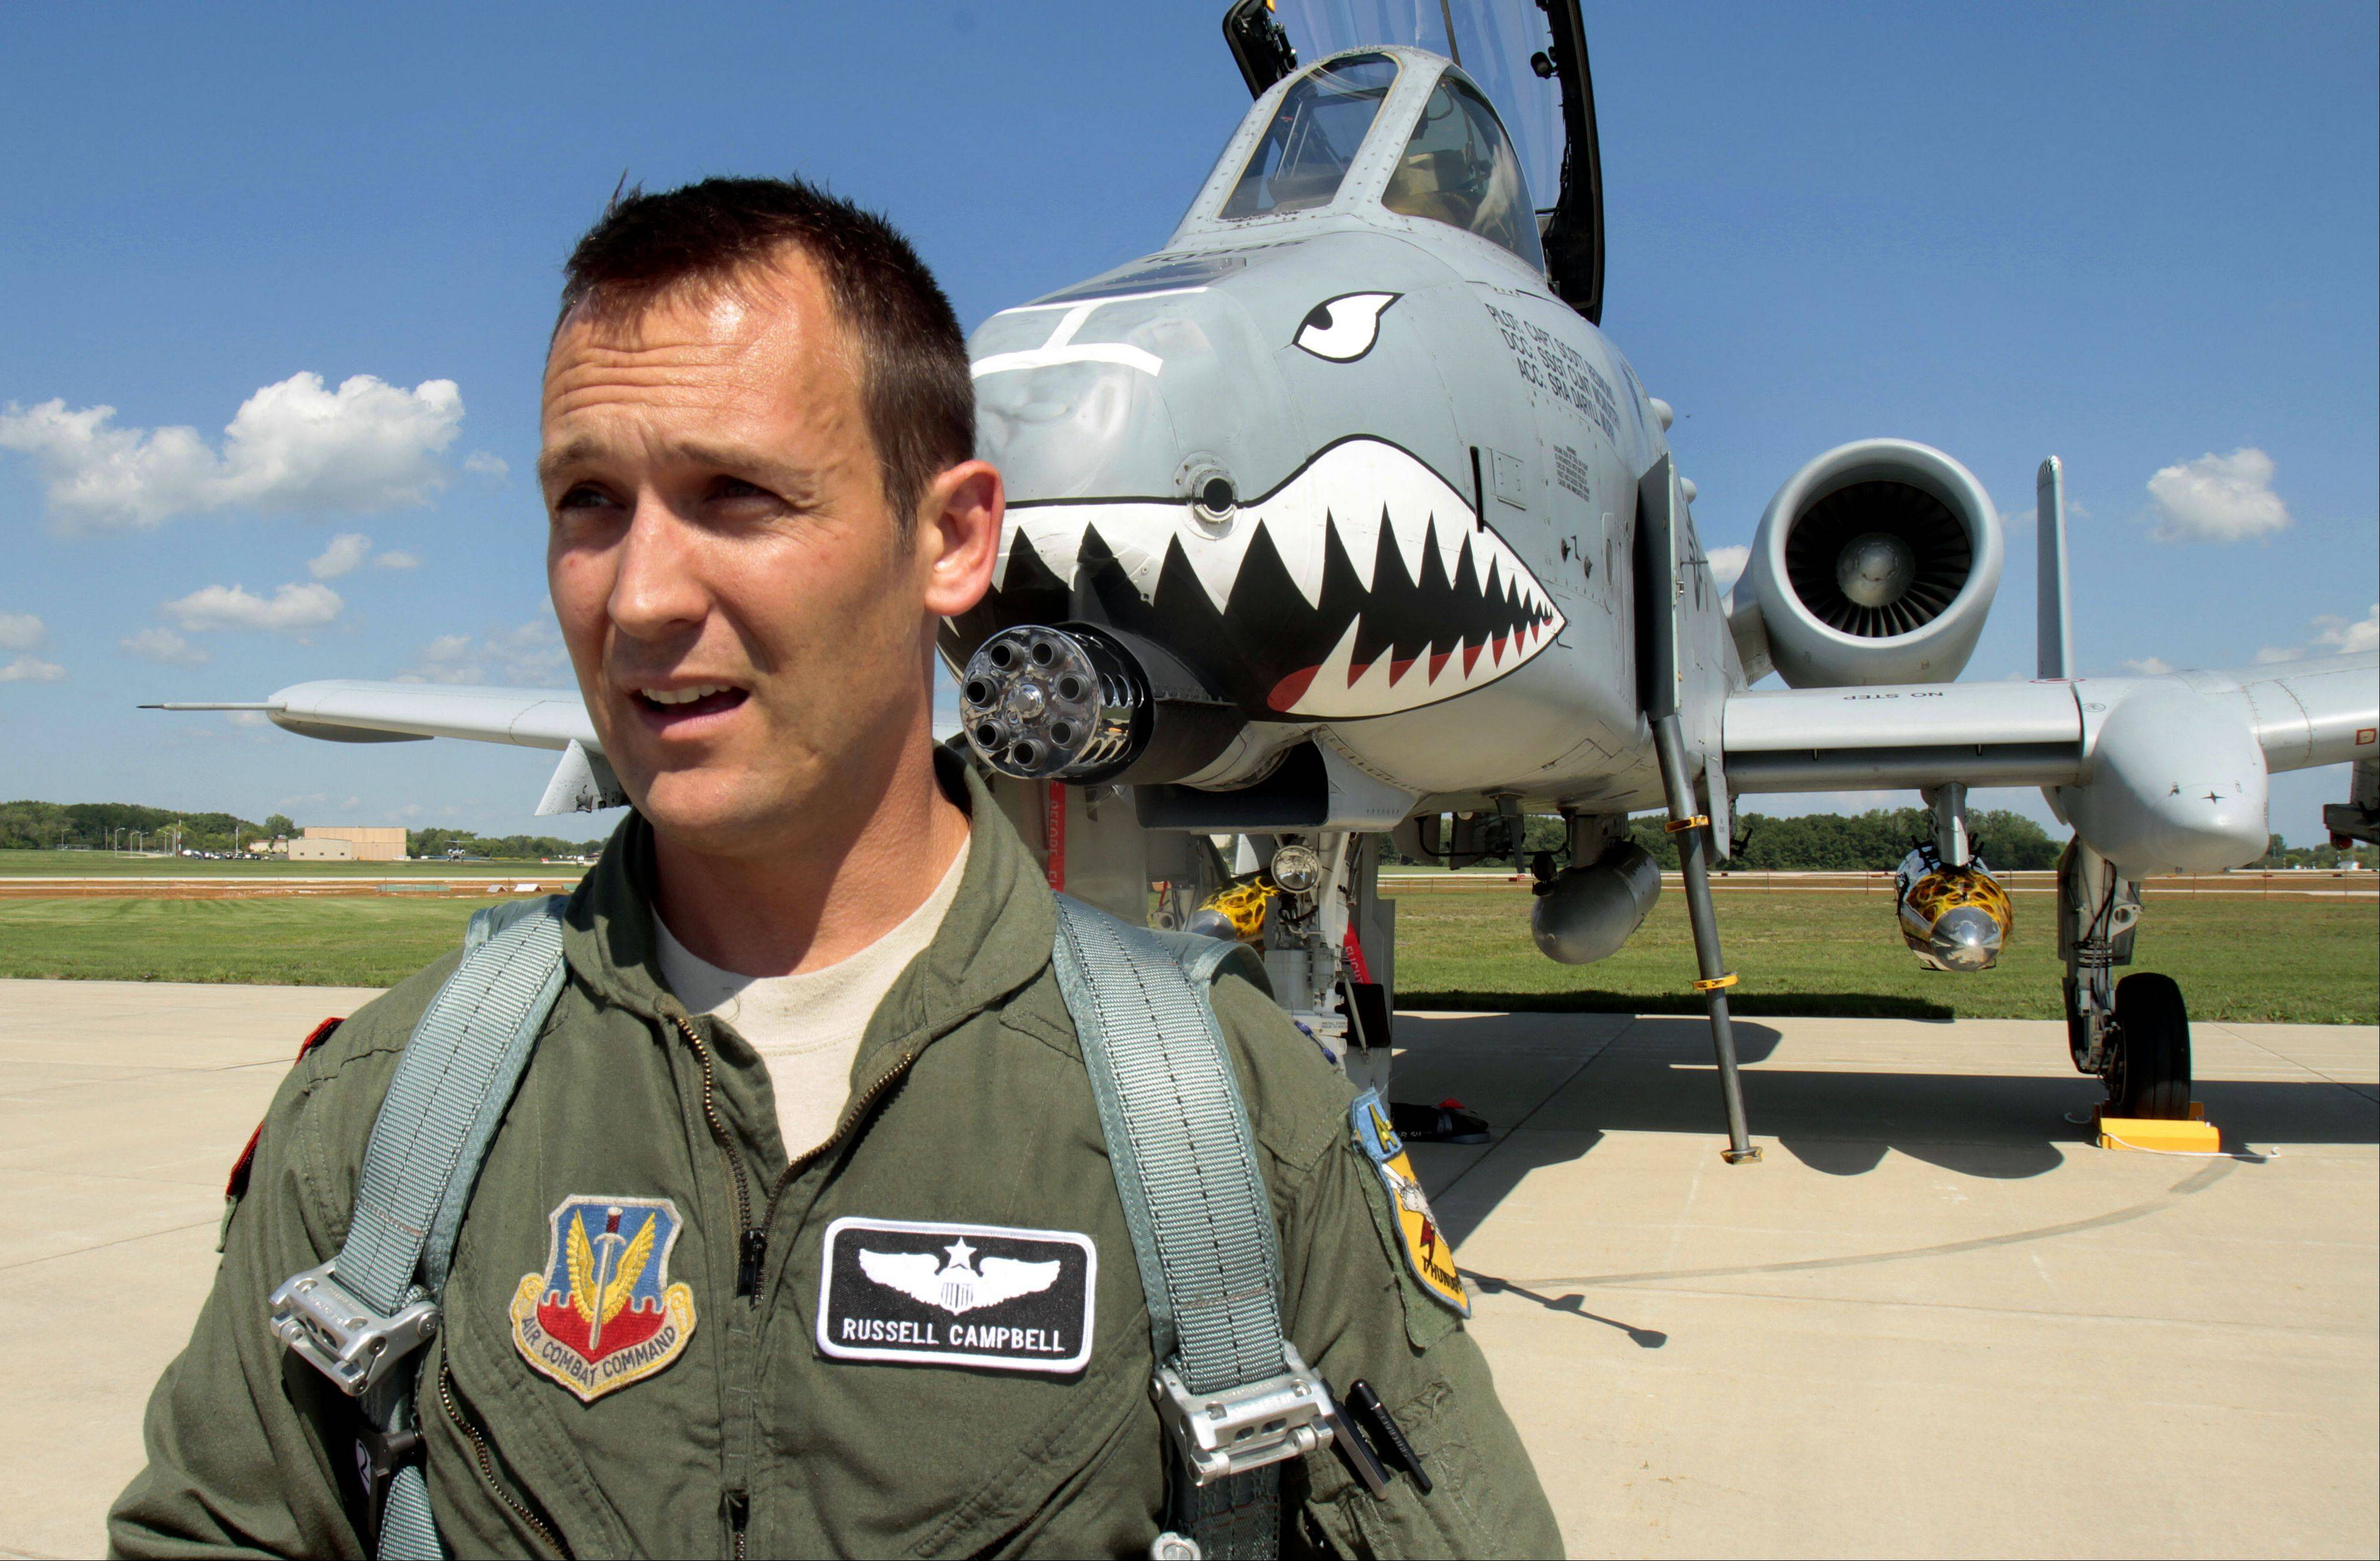 Libertyville native and Air Force Capt. Russell Campbell talks after flying in his A-10 Thunderbolt II into Waukegan Municipal Airport on Thursday. The plane will be used as a backup for the 2012 Wings Over Waukegan air show on Saturday.